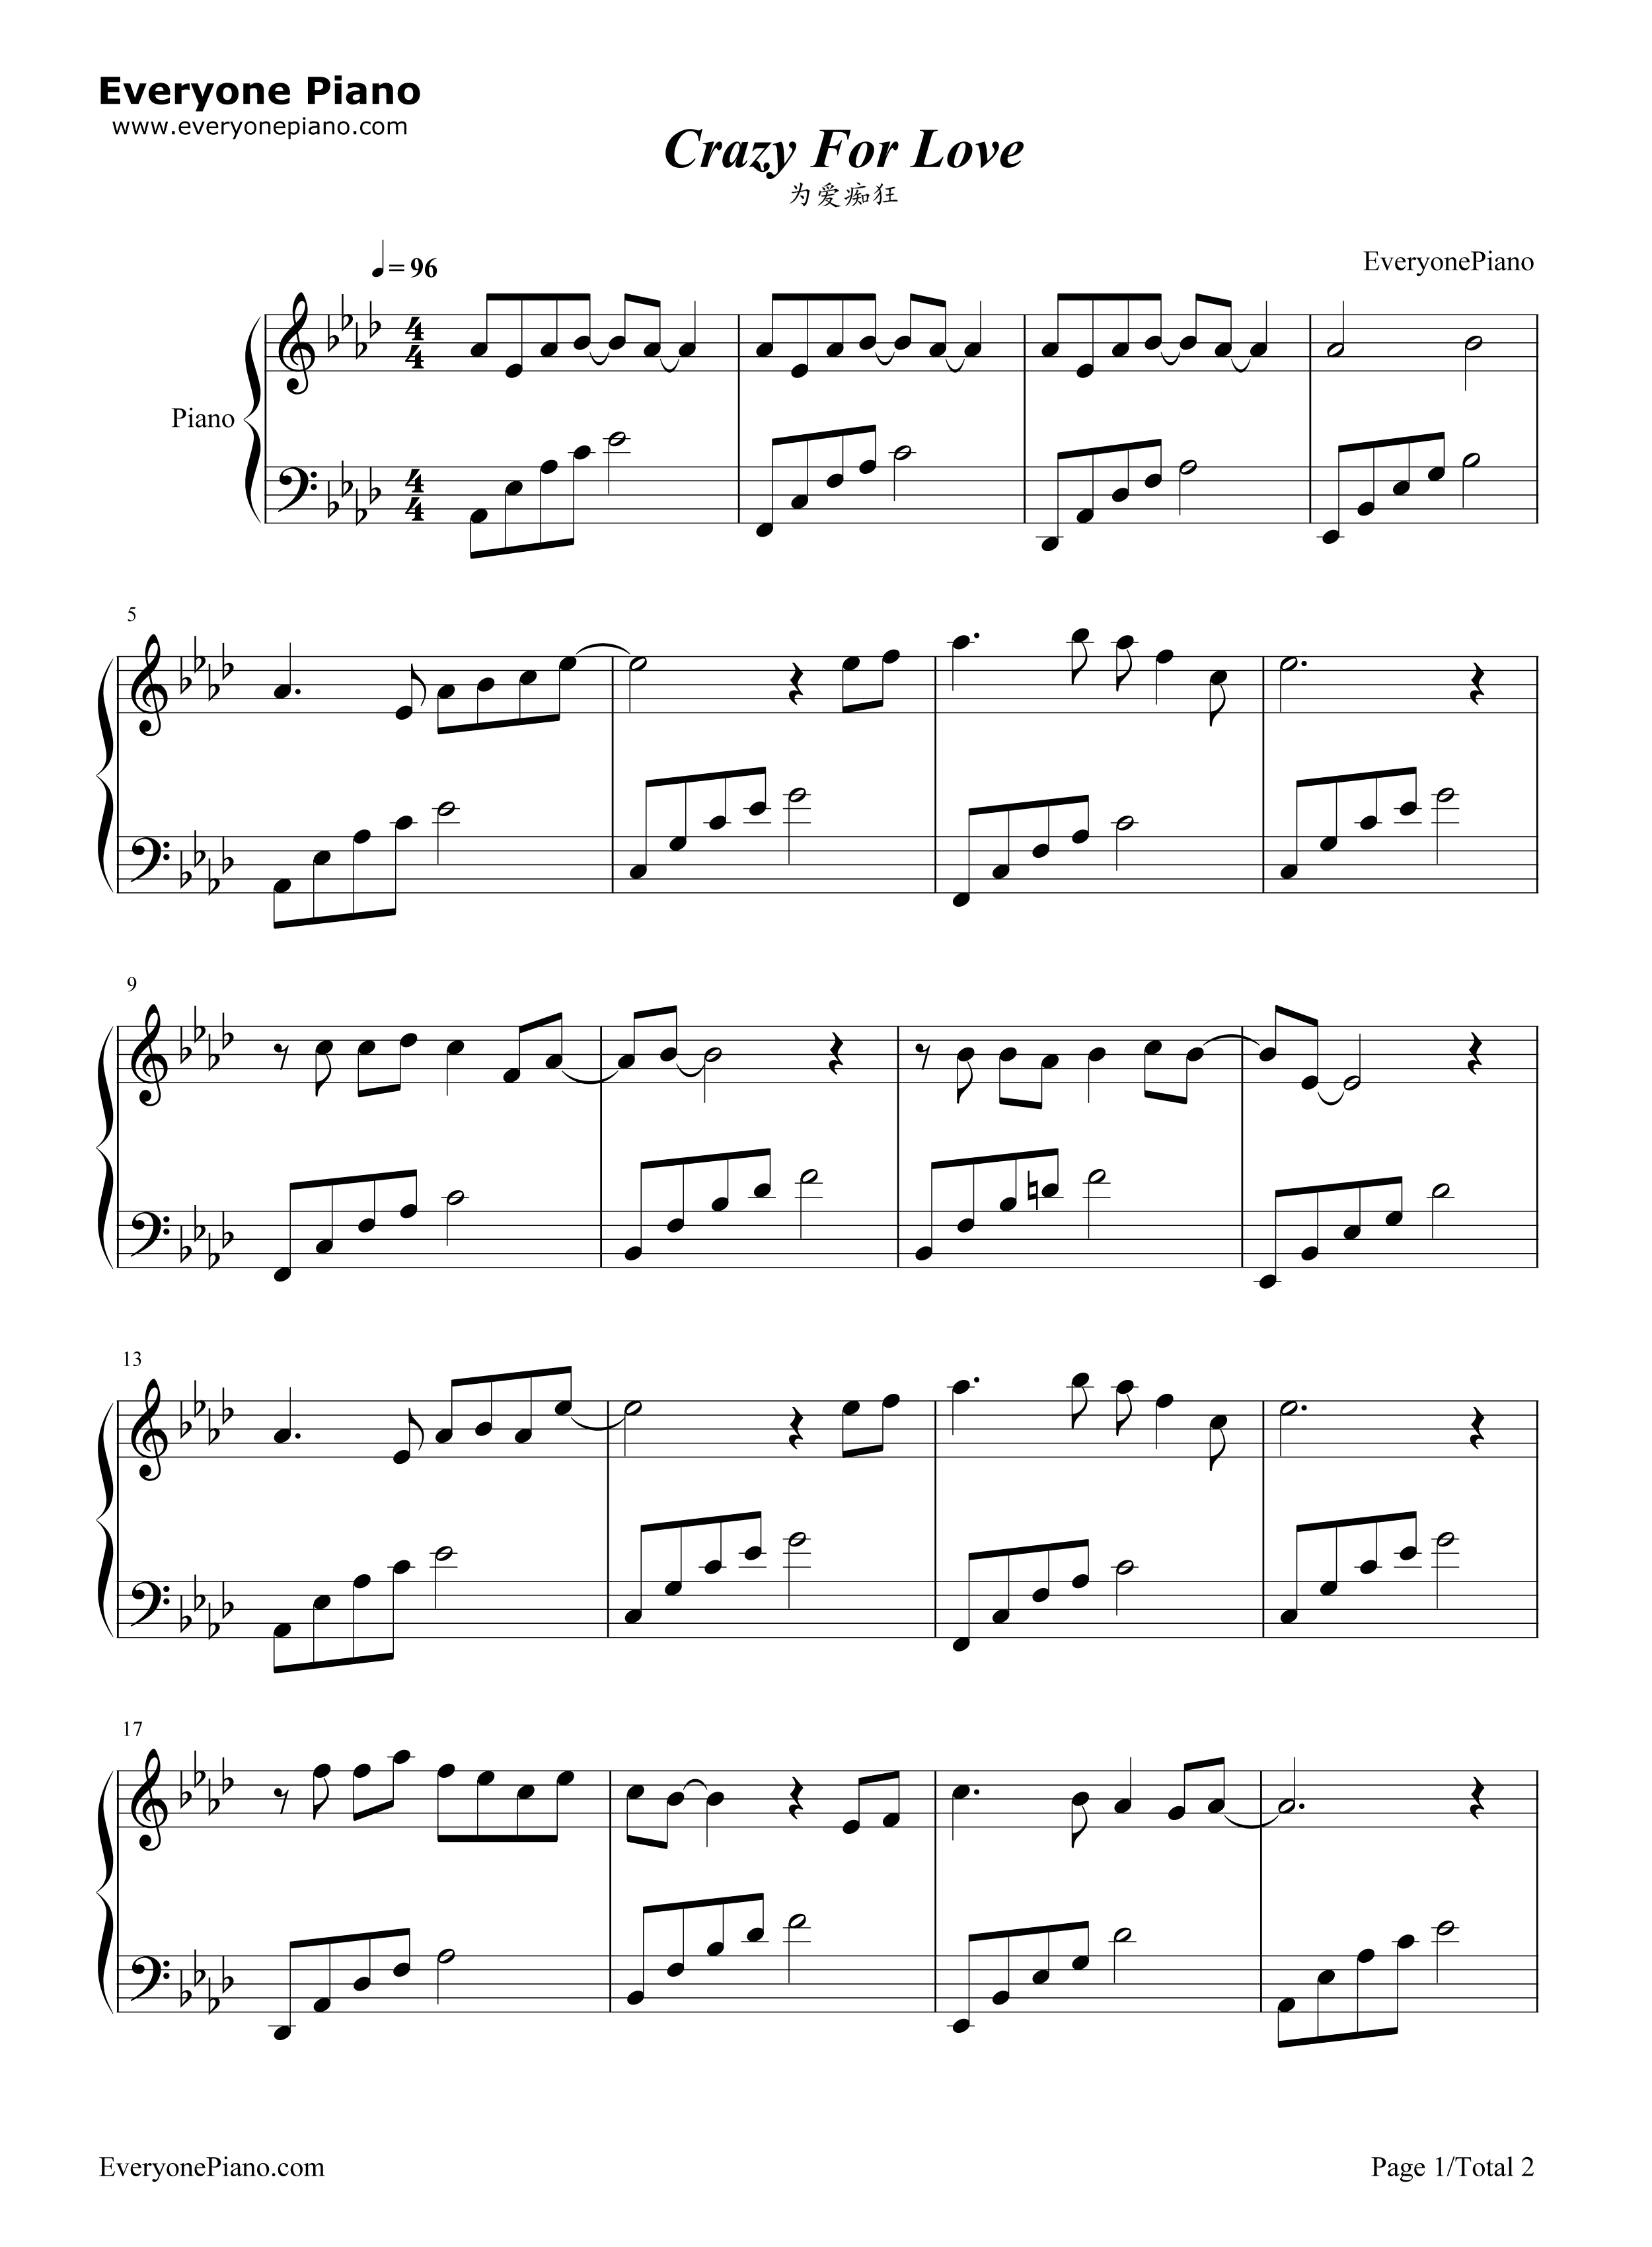 Crazy for love rene liu stave preview 1 free piano sheet music listen now print sheet crazy for love rene liu stave preview 1 hexwebz Image collections